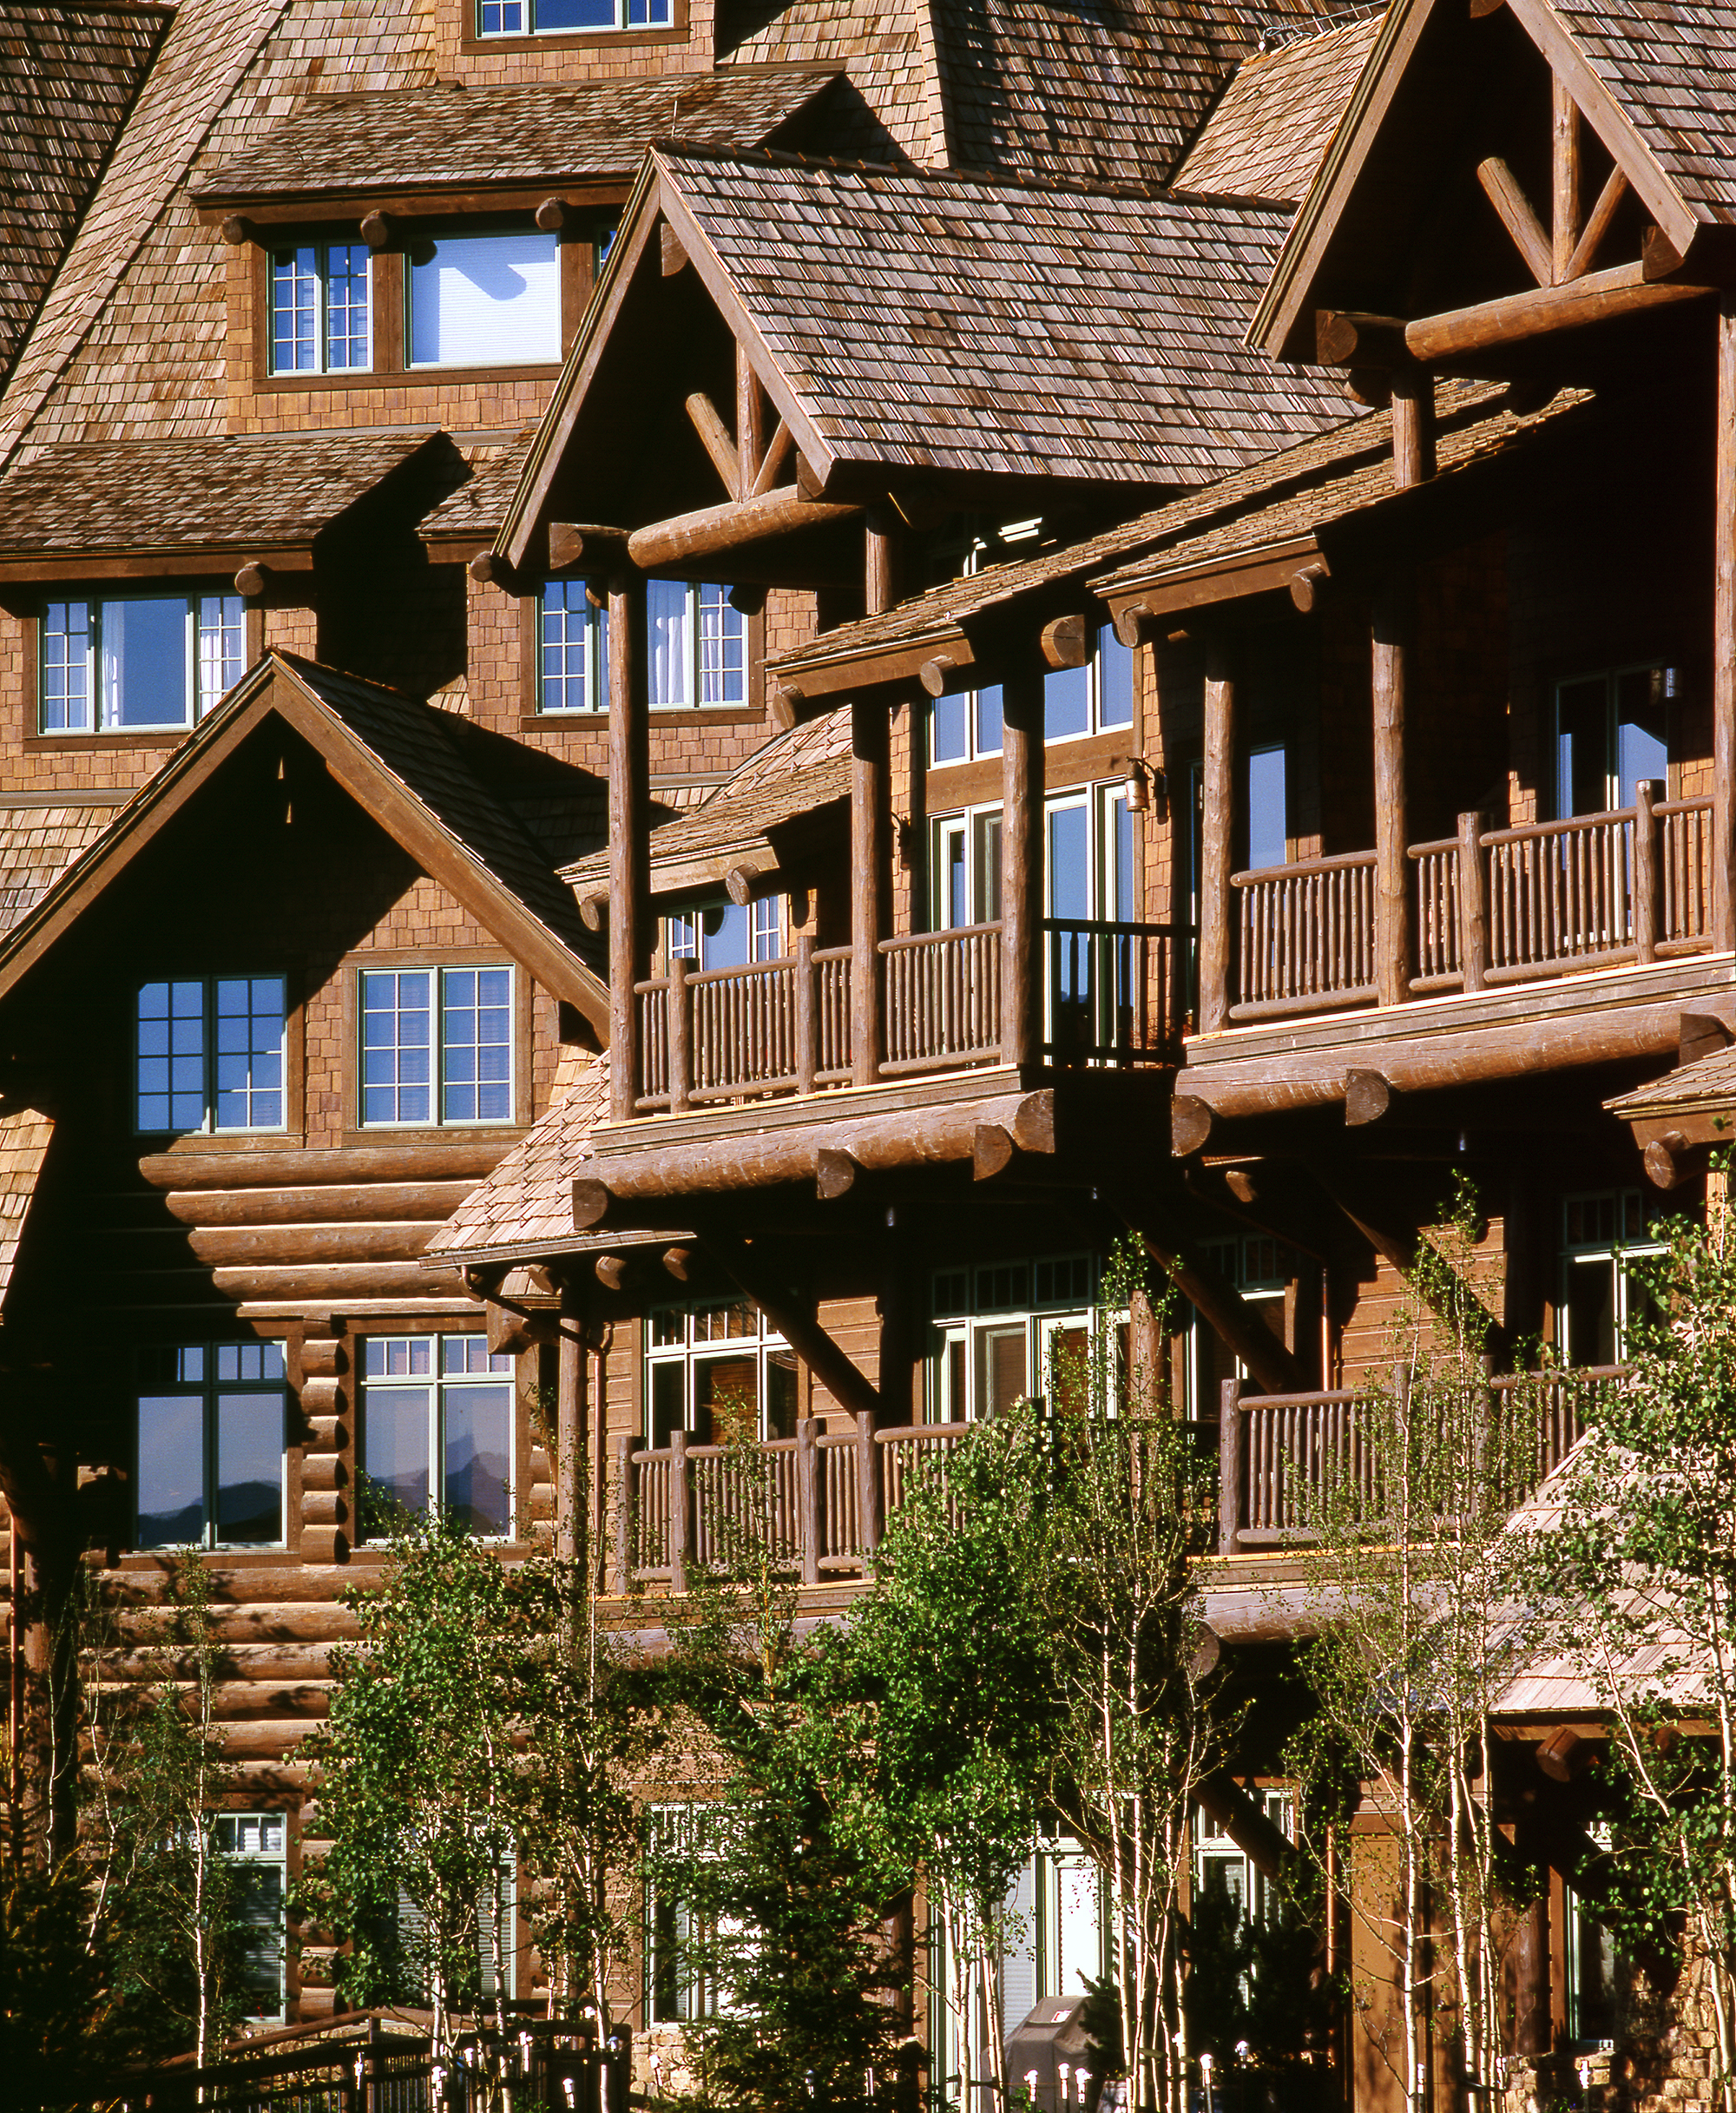 horizon_pass_bachelor_gulch_avon_colorado_wood_detail.jpg